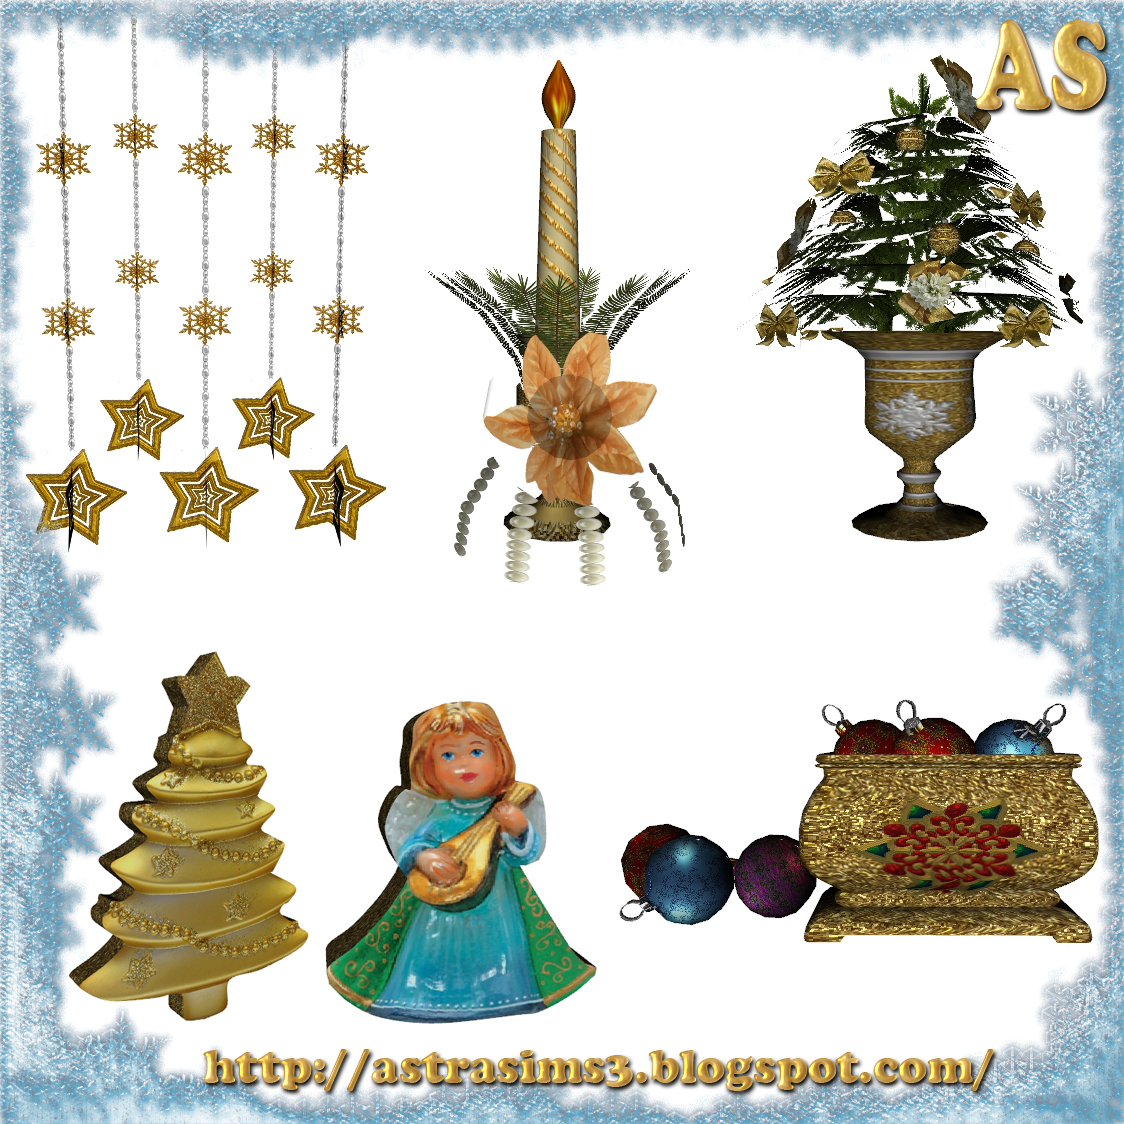 My Sims 3 Blog: Christmas Decor By Astra